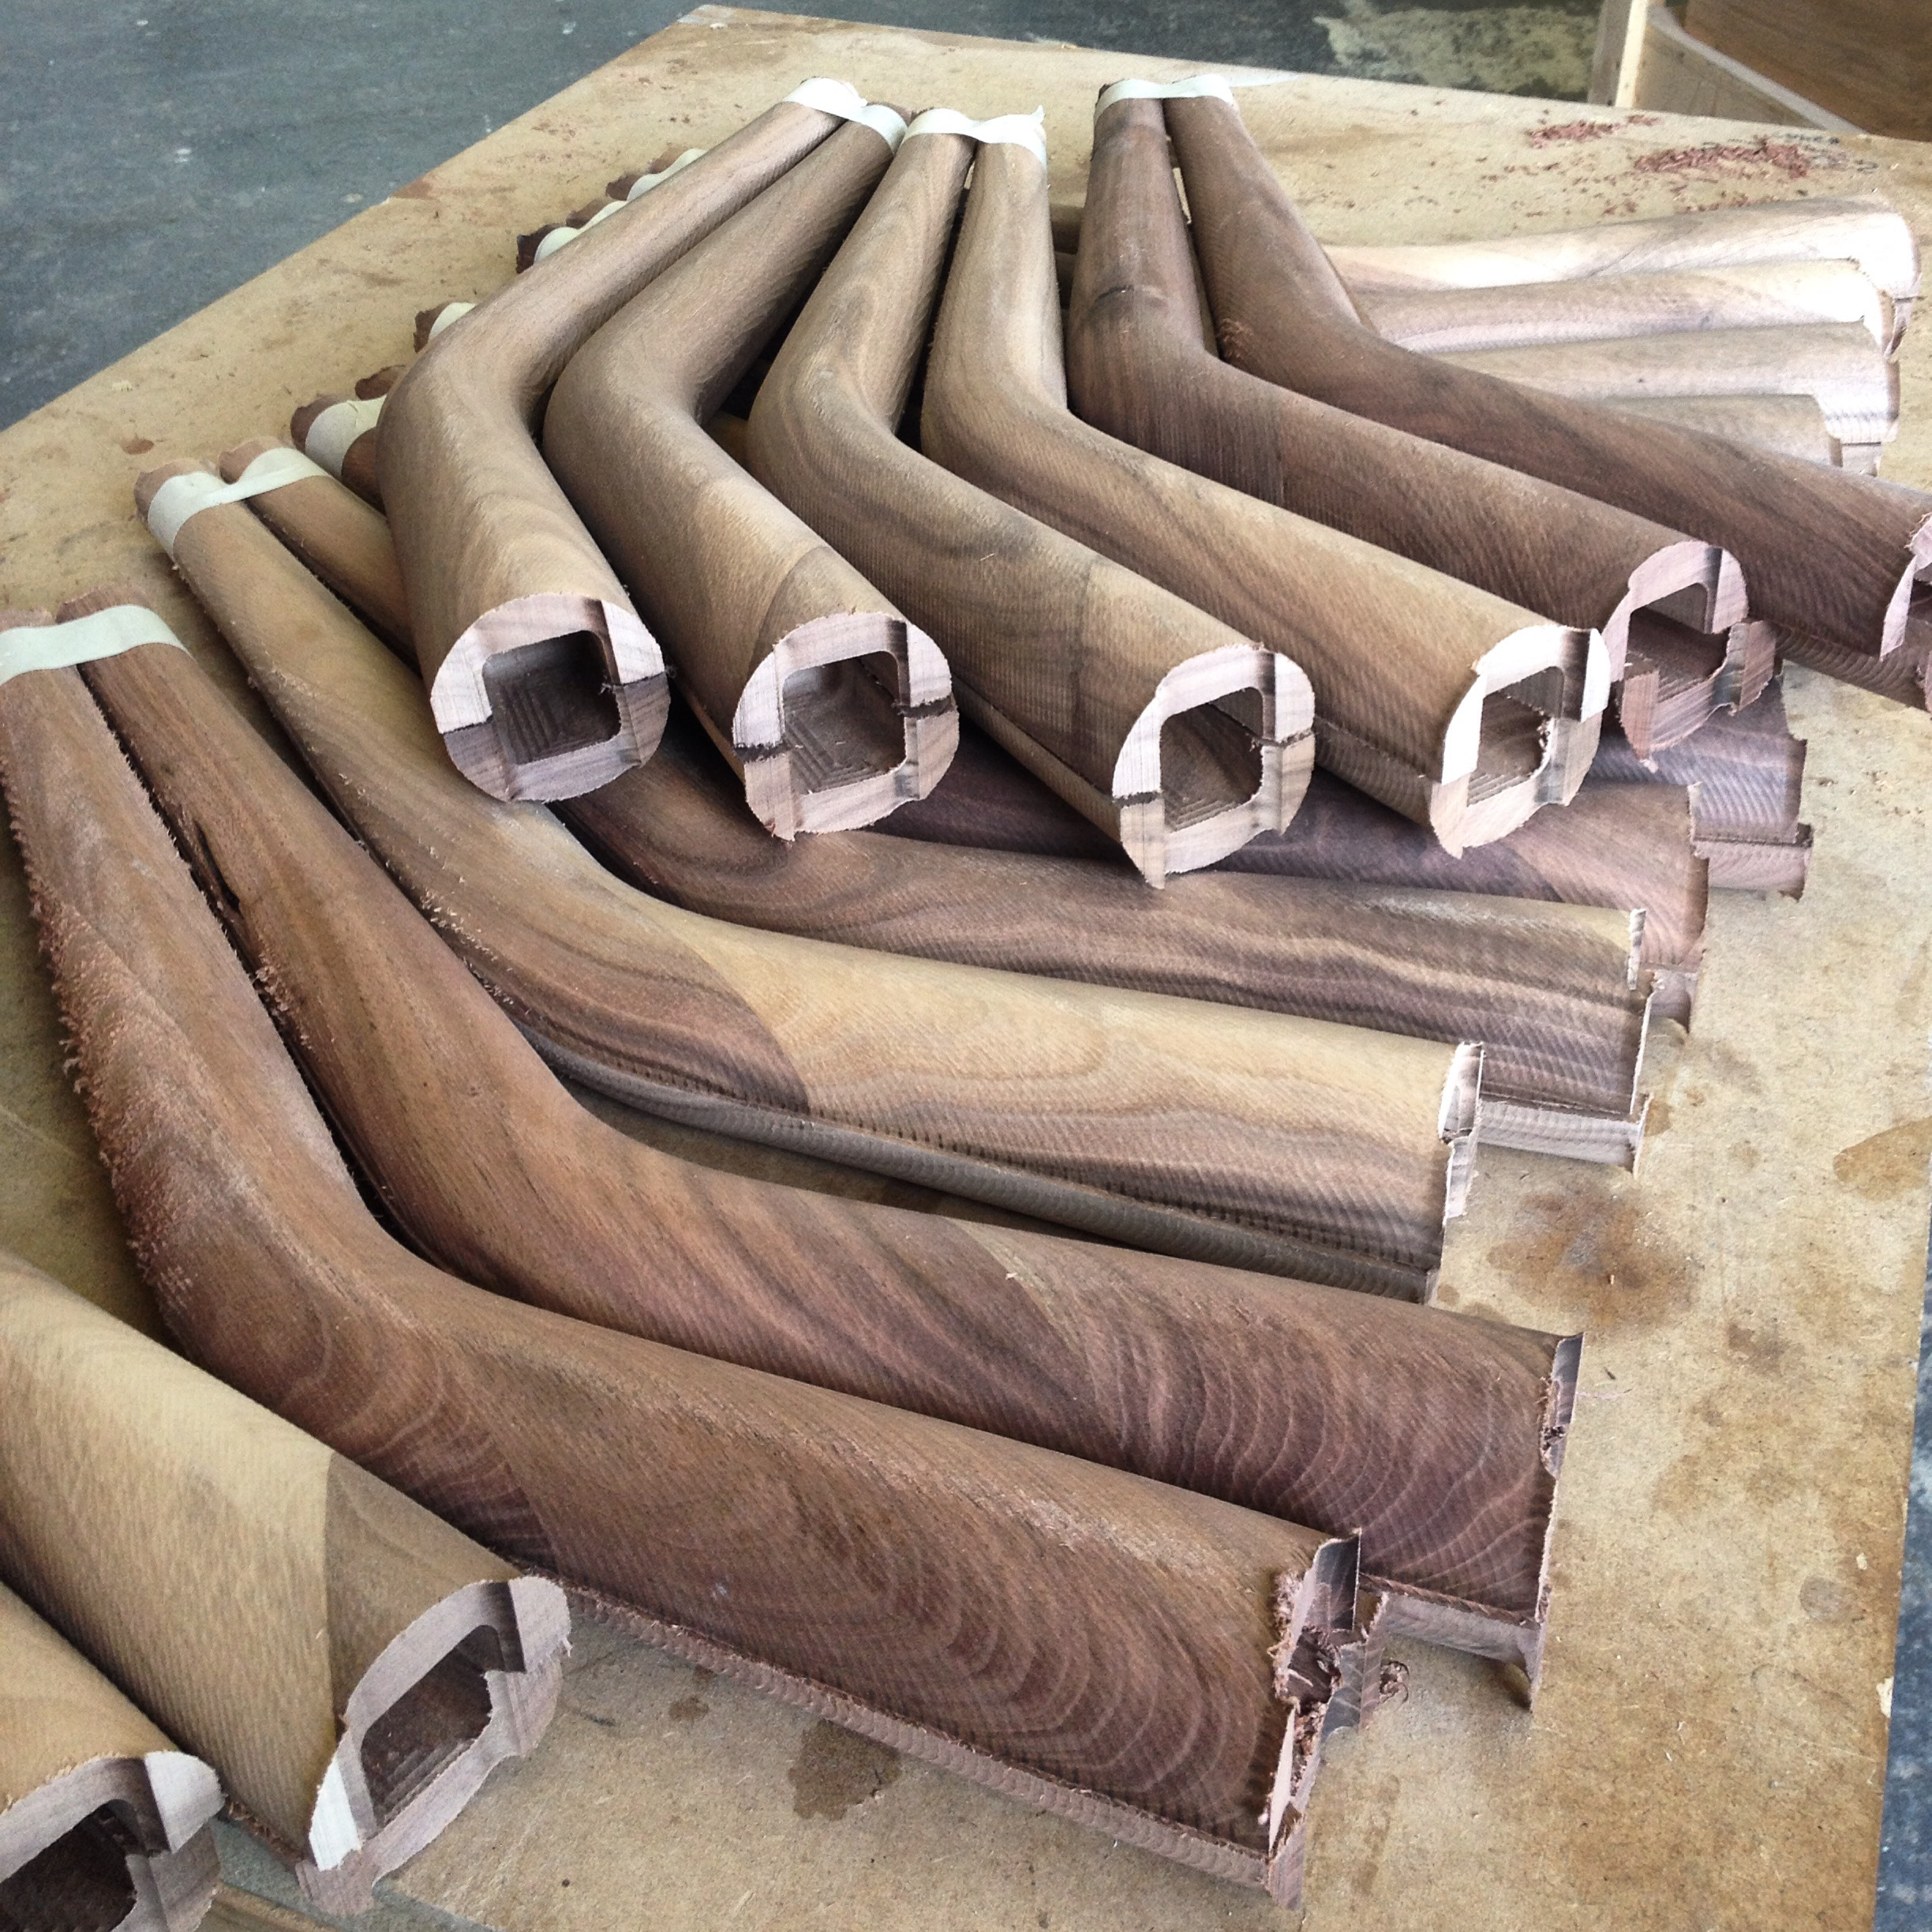 CNC_walnut 3d mill parts.JPG